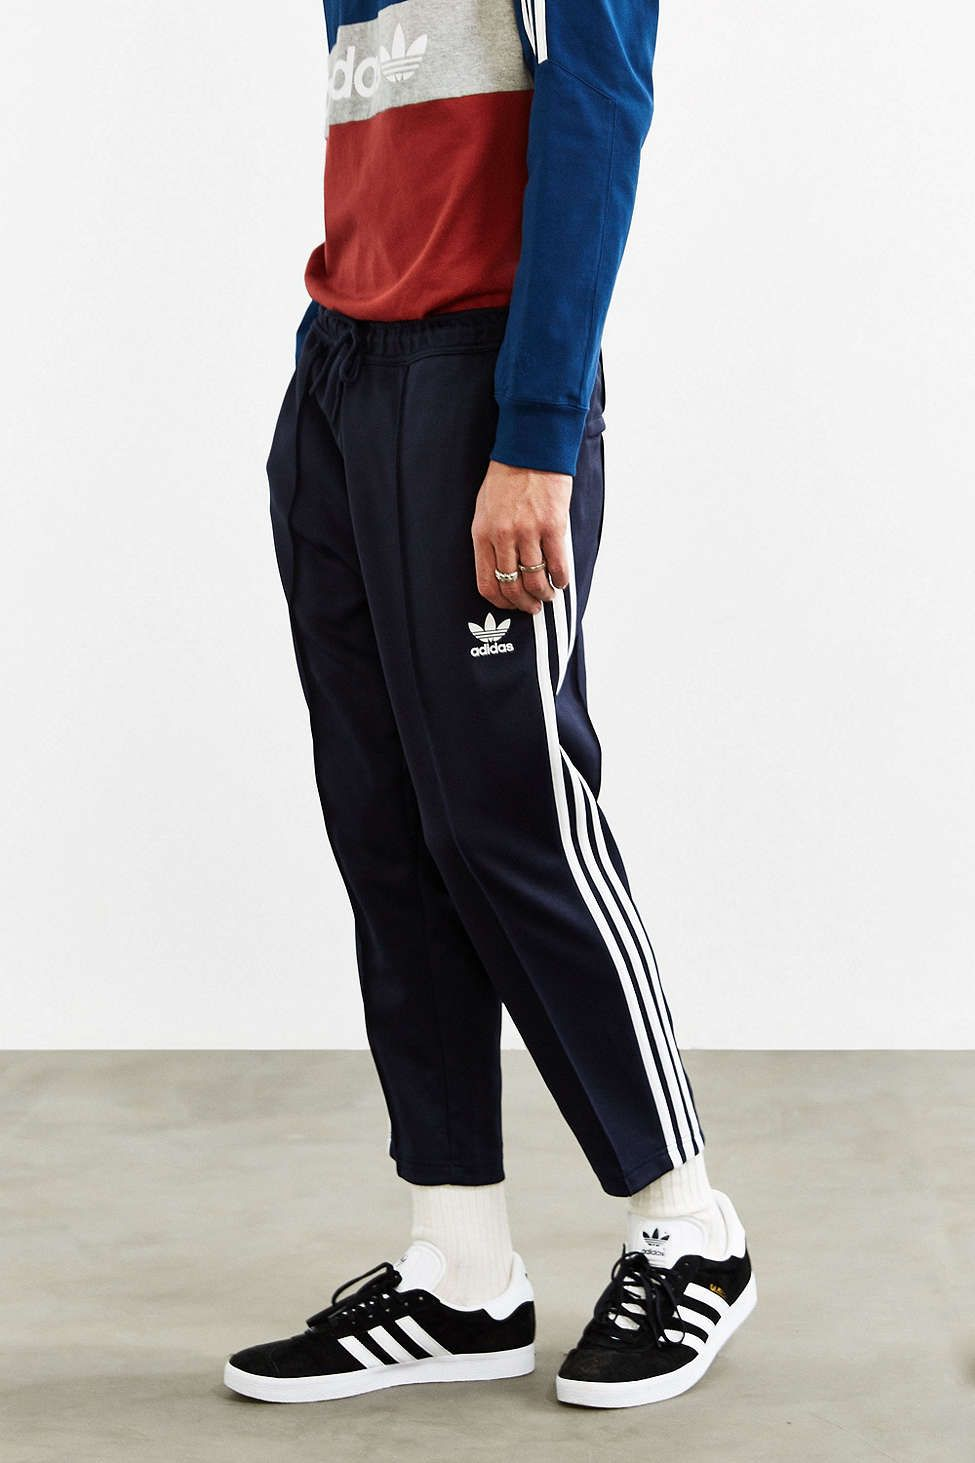 info for d4d75 ceafd adidas Superstar Relaxed Cropped Track Pant | Birthday 2017 ...